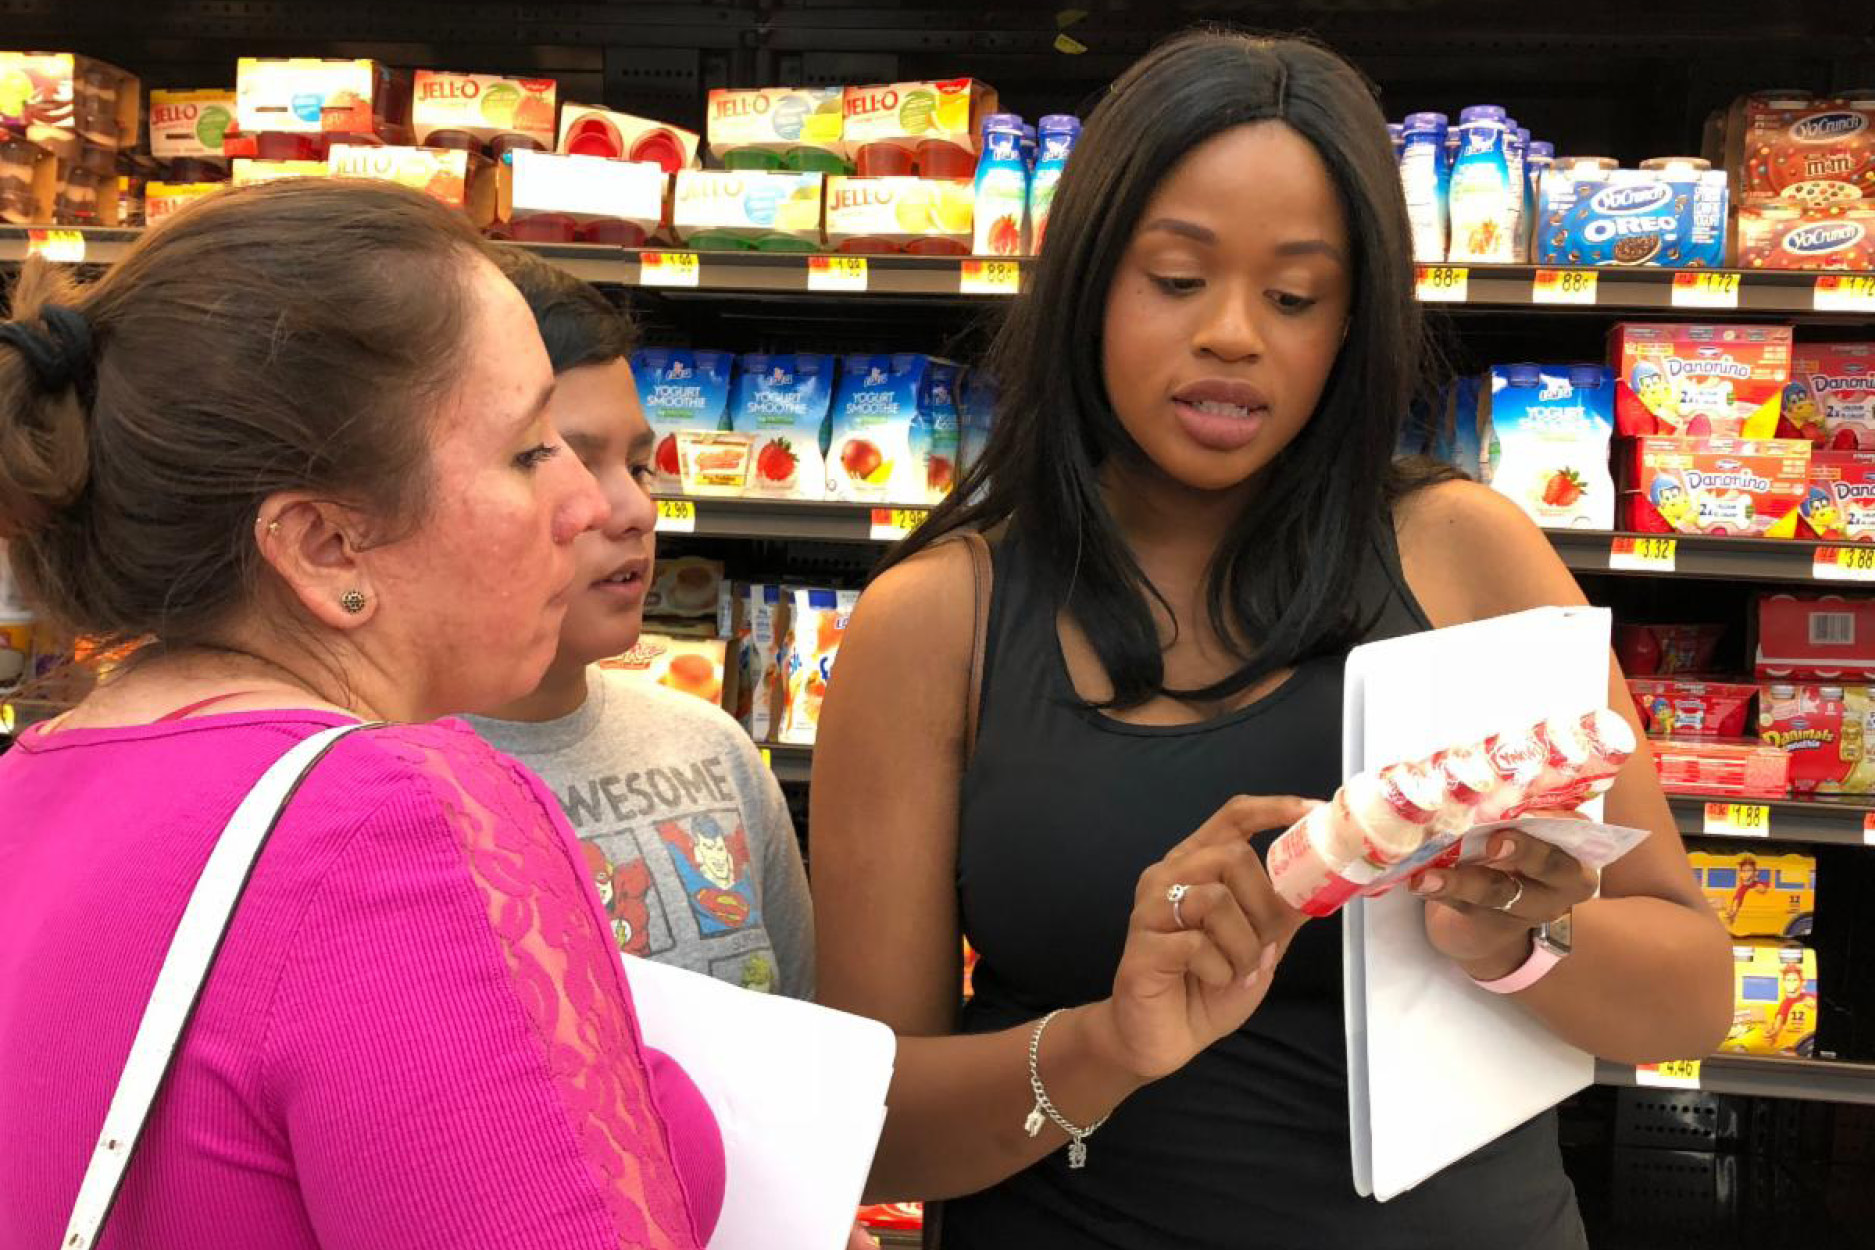 A healthy lifestyles coach showing healthy grocery options to two program participants